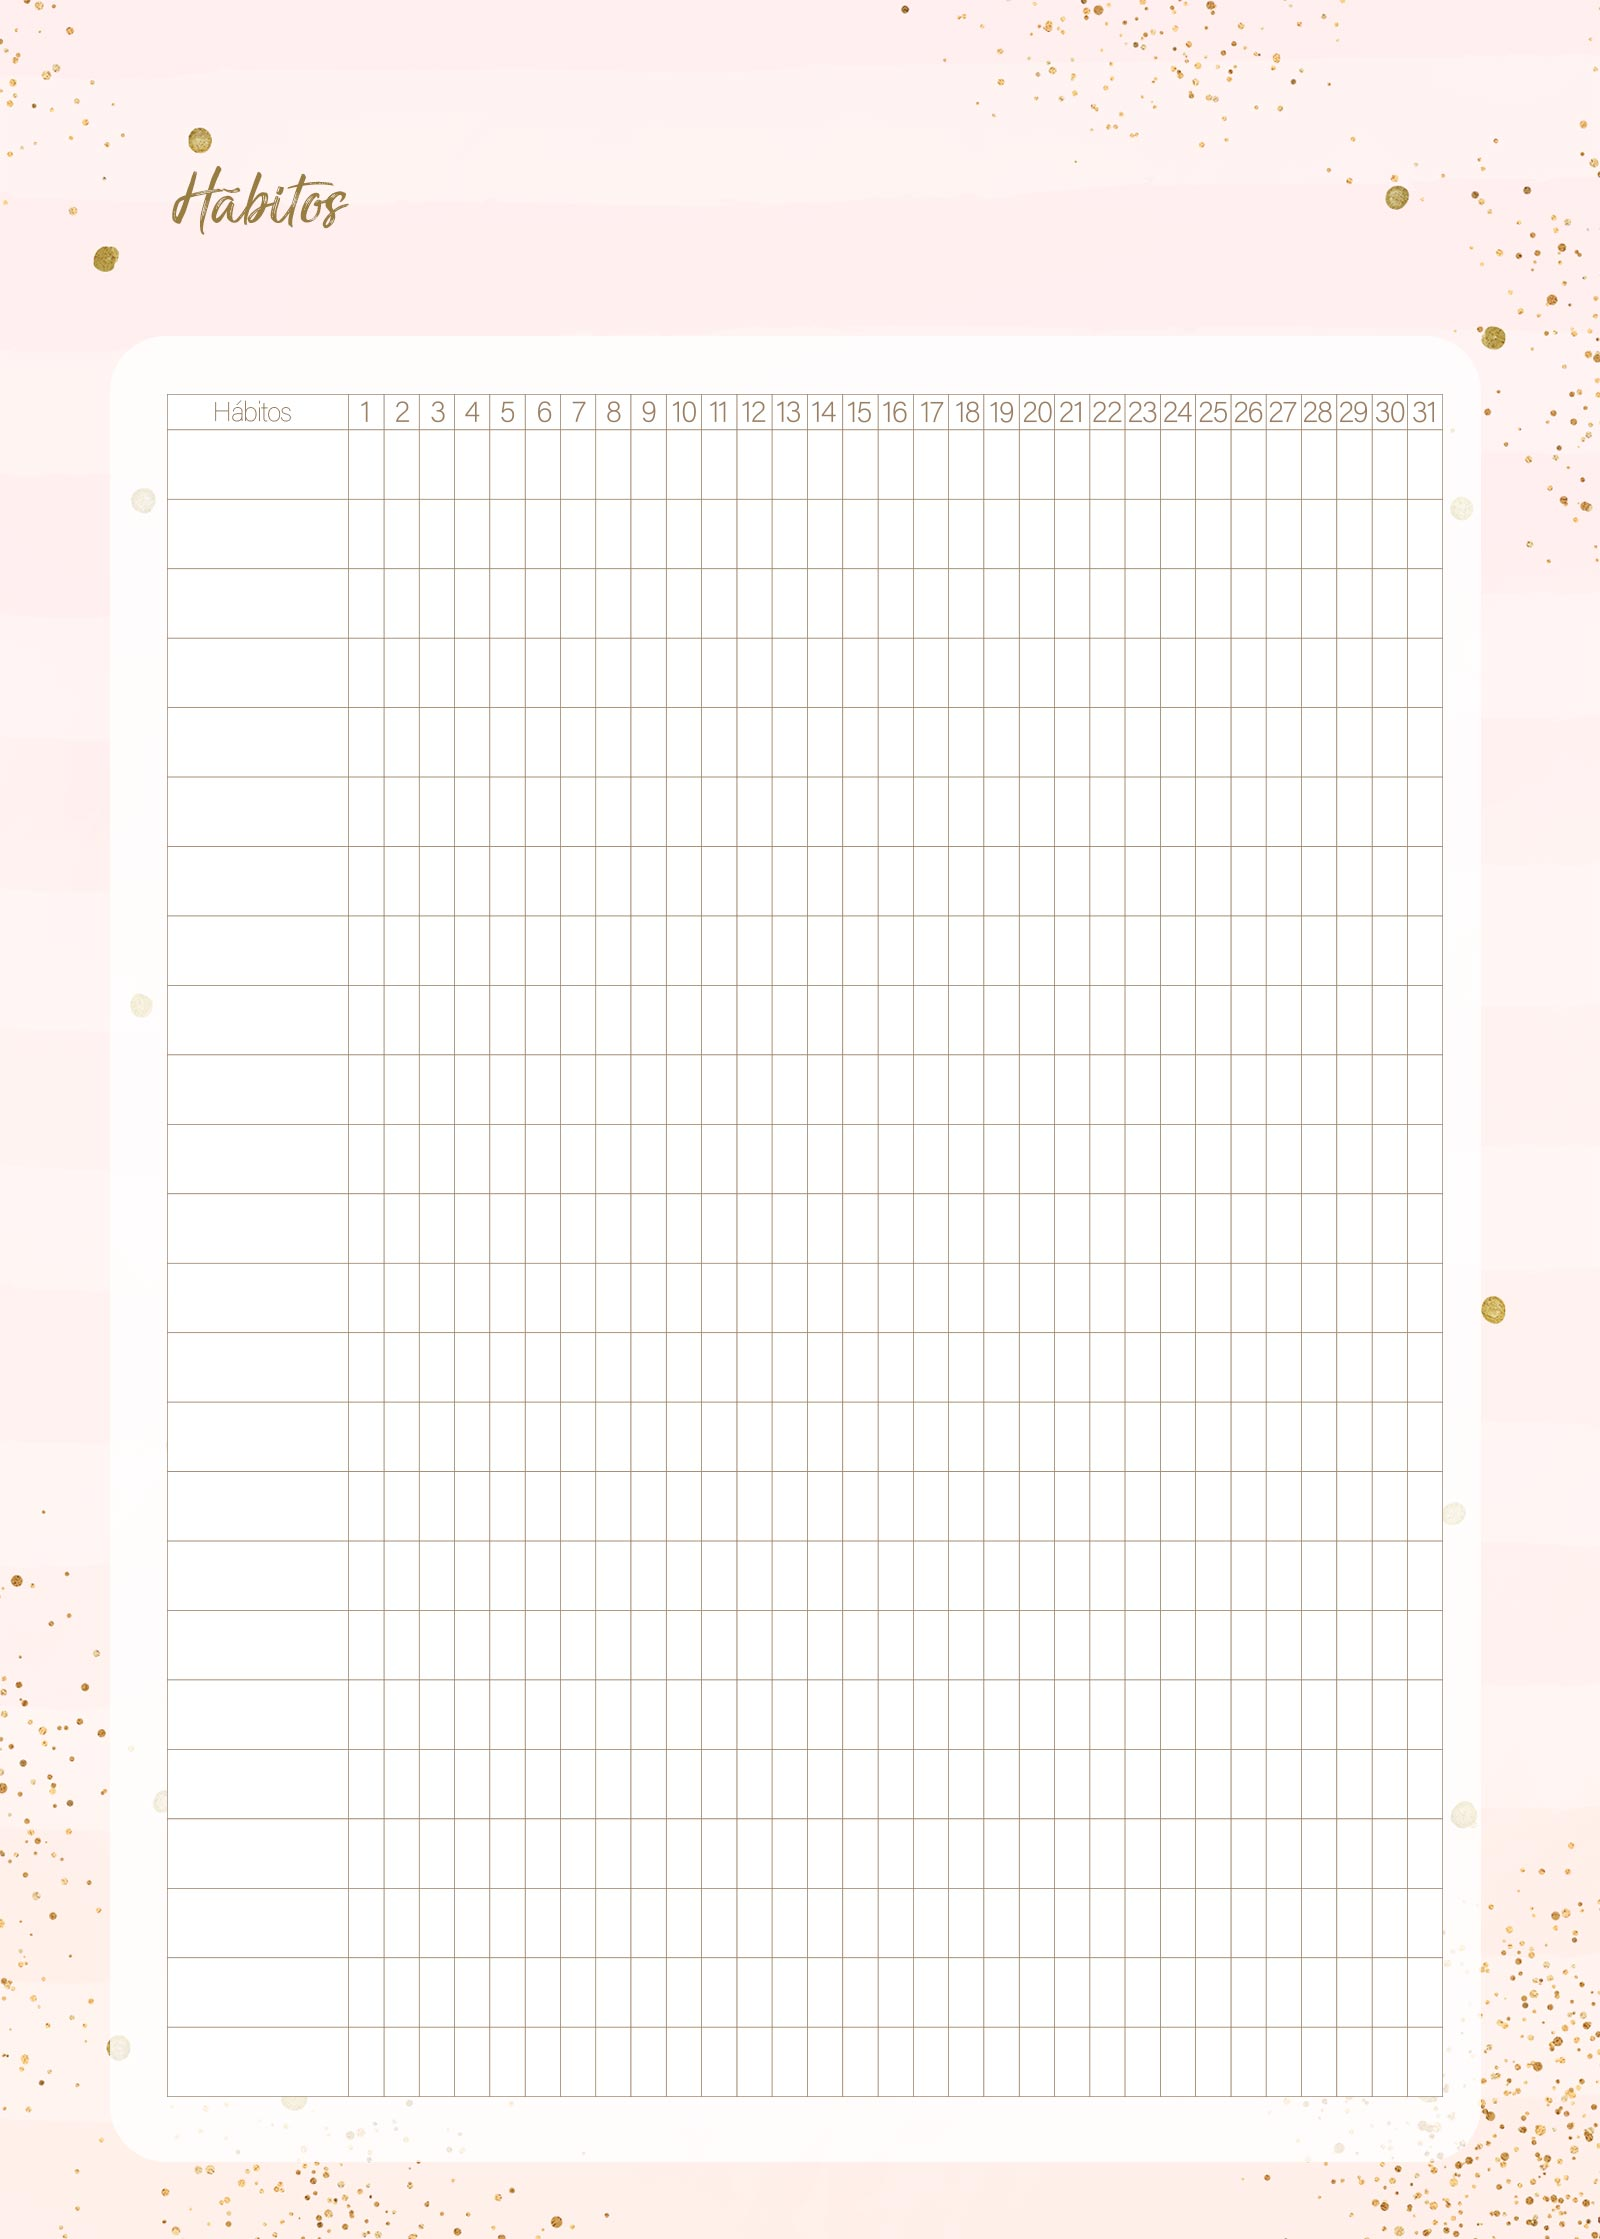 Planner Rose Gold Habitos